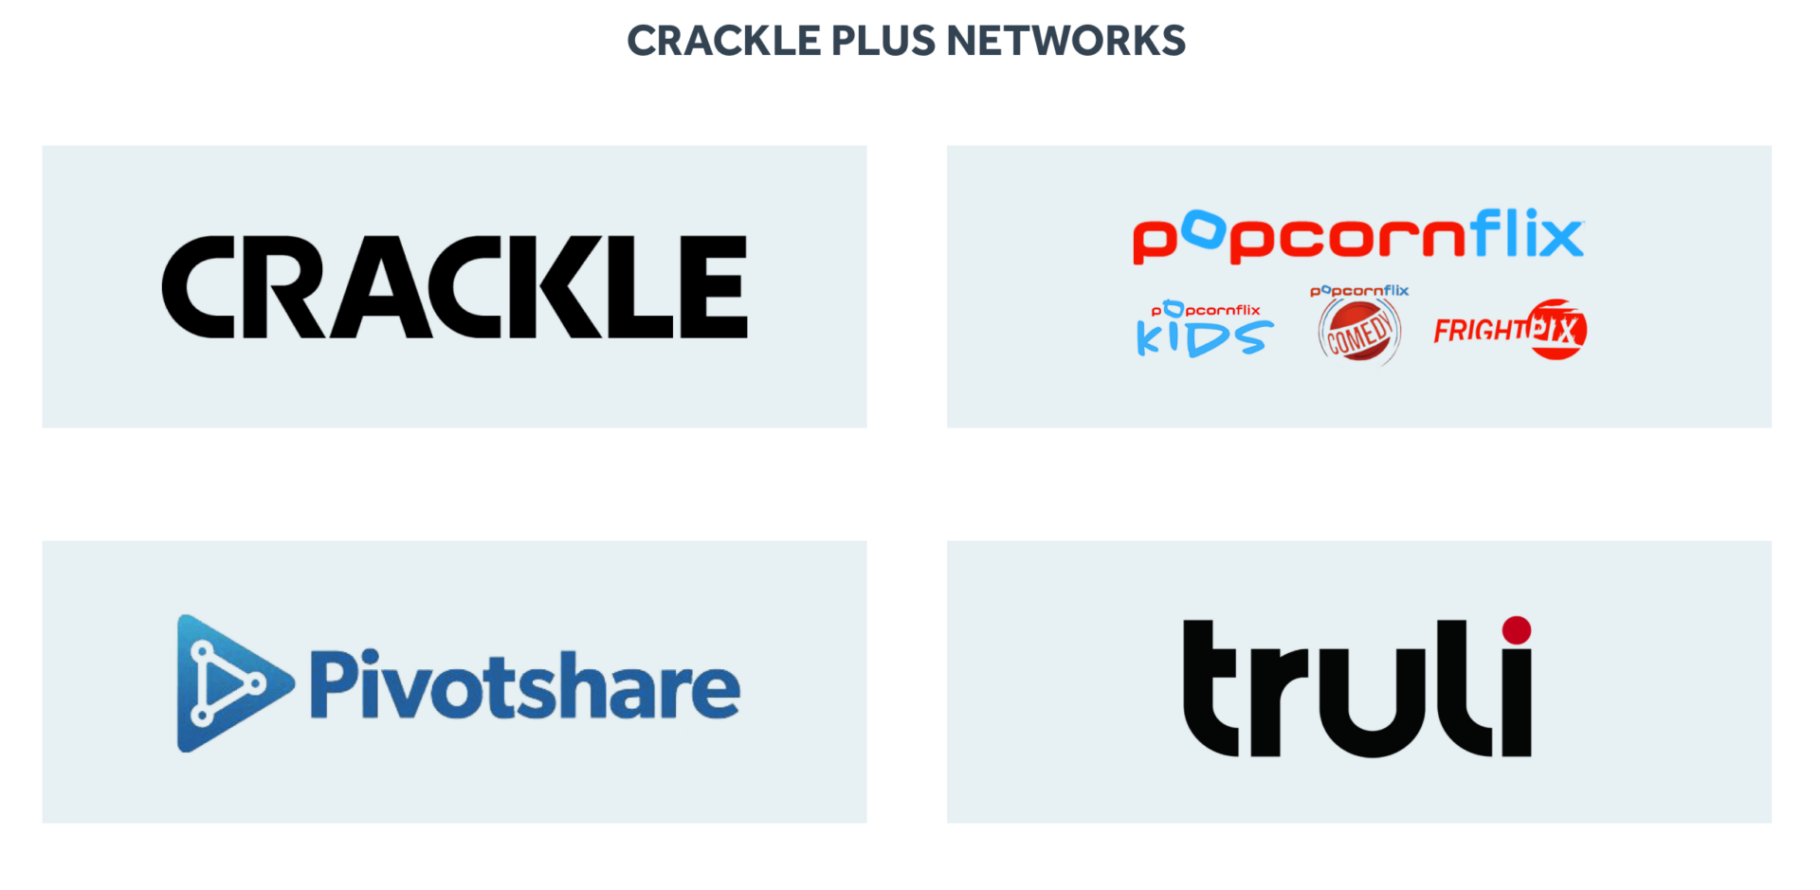 Crackle Plus Networks